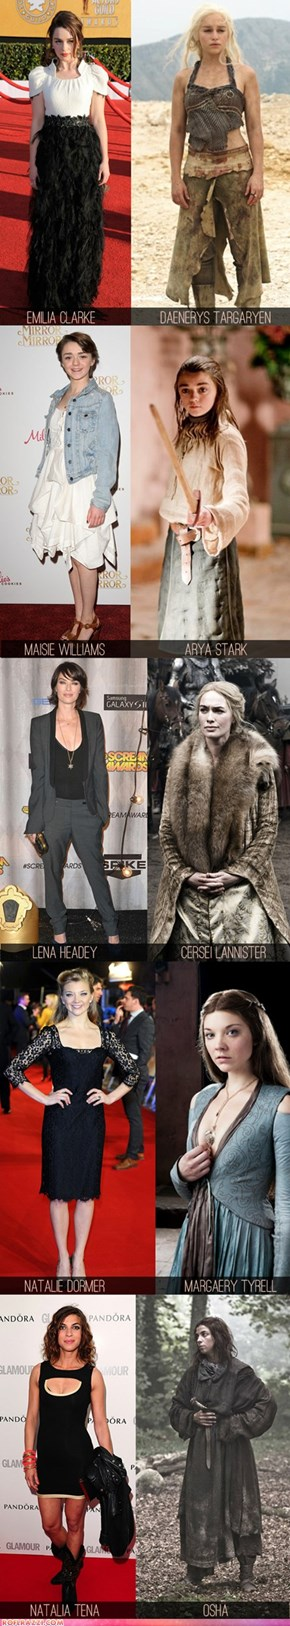 If Style Could Kill: Game of Glam